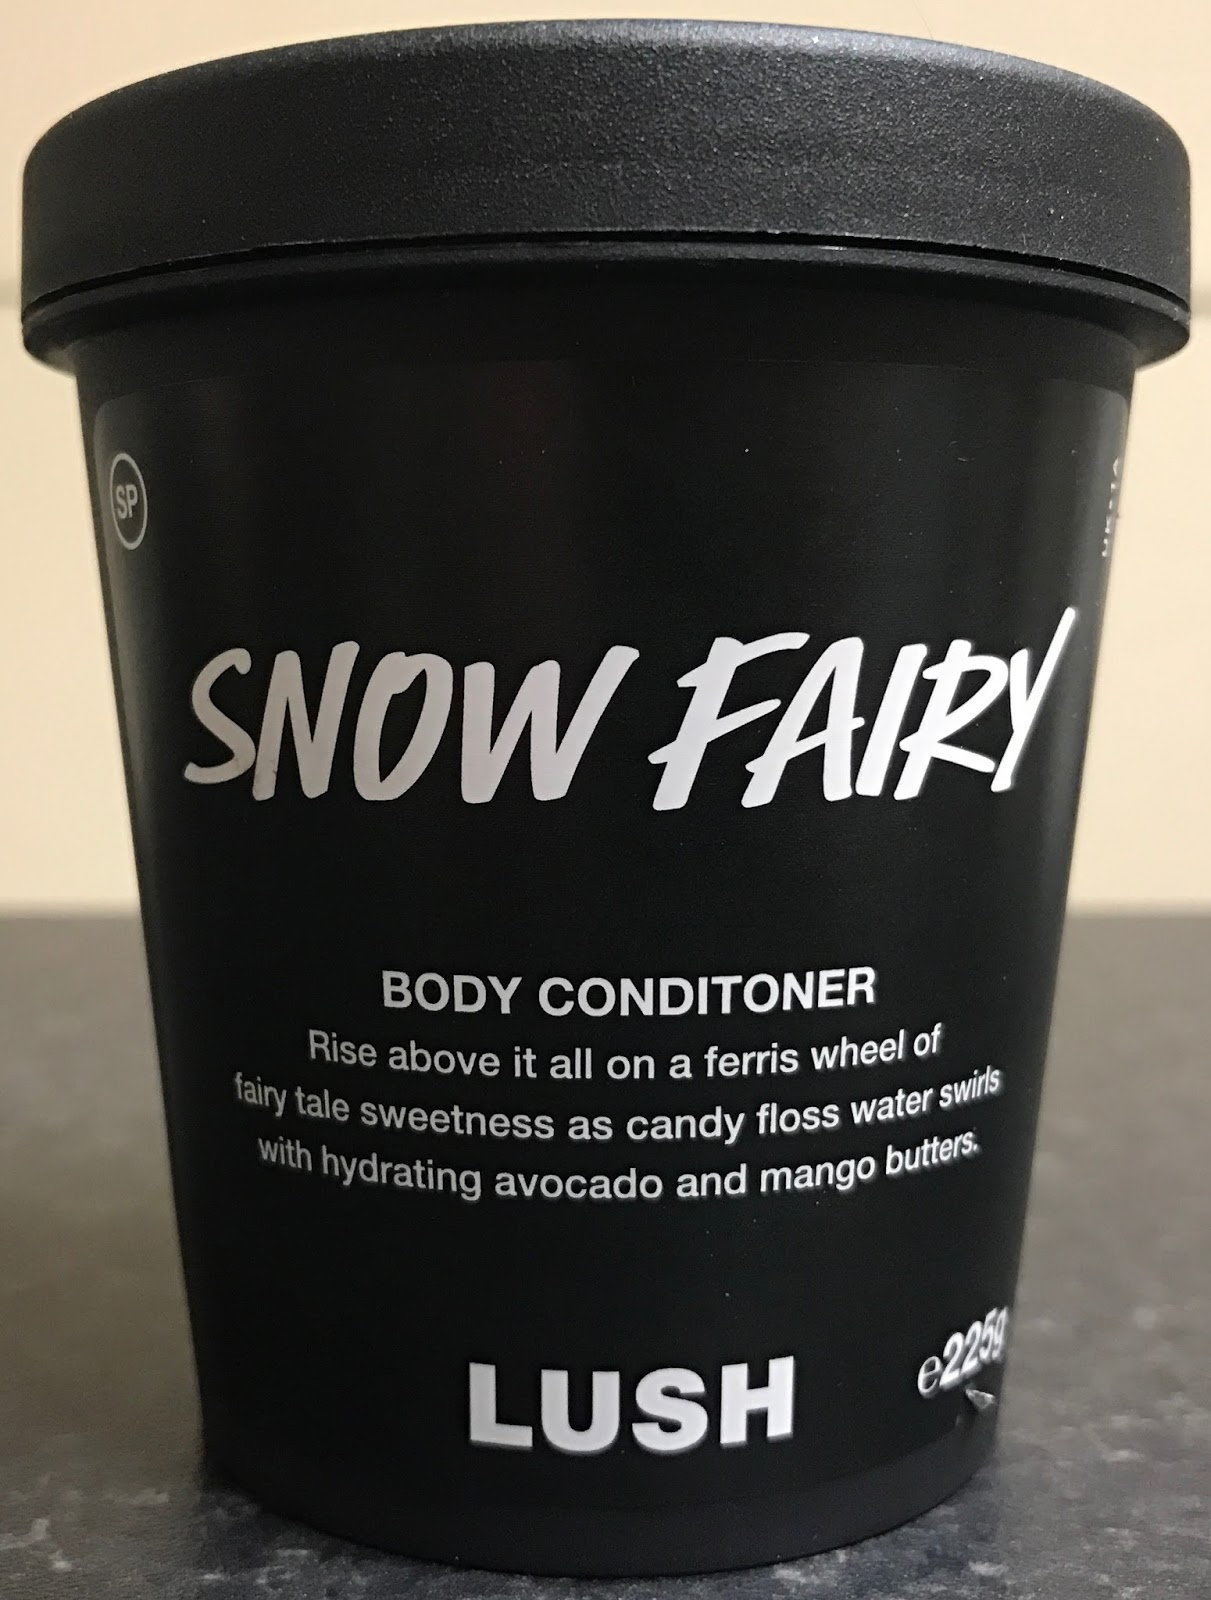 How to use body conditioner